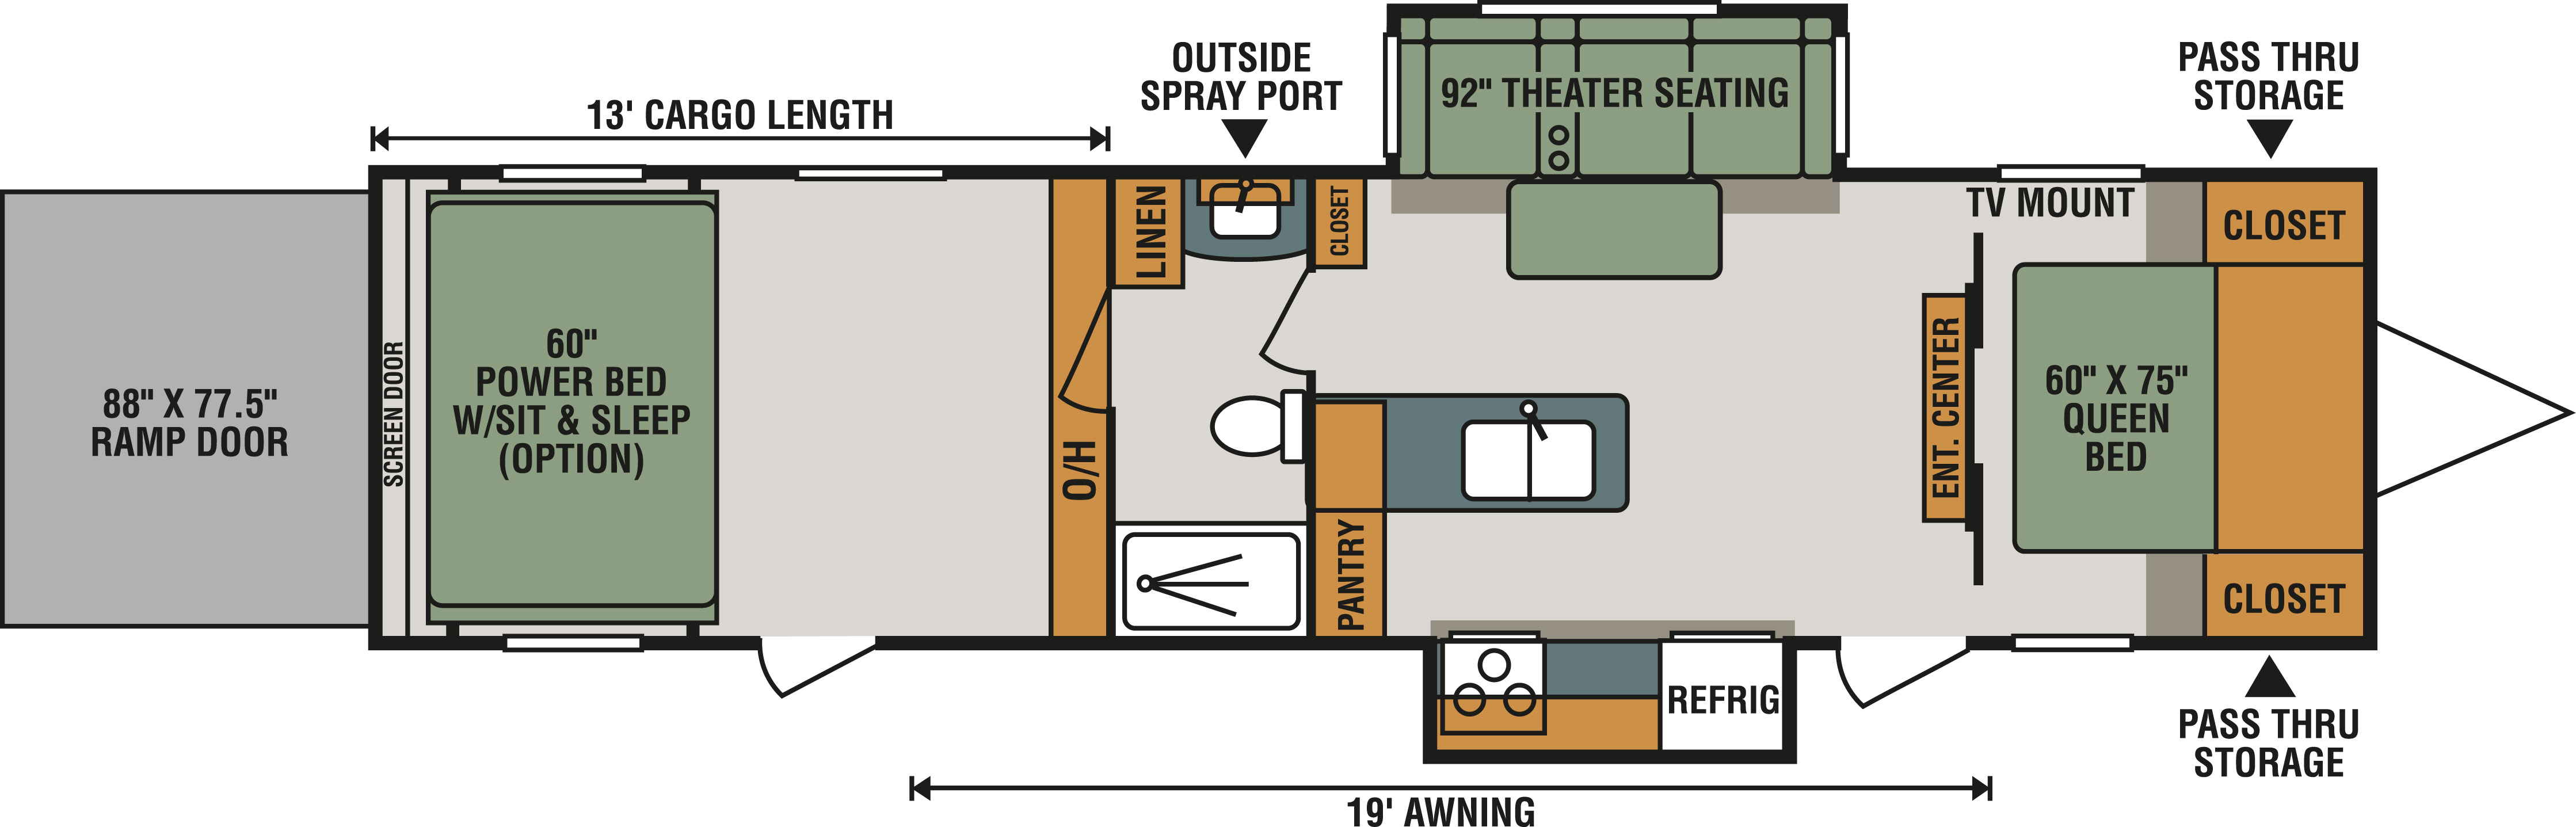 342THR13 Floorplan